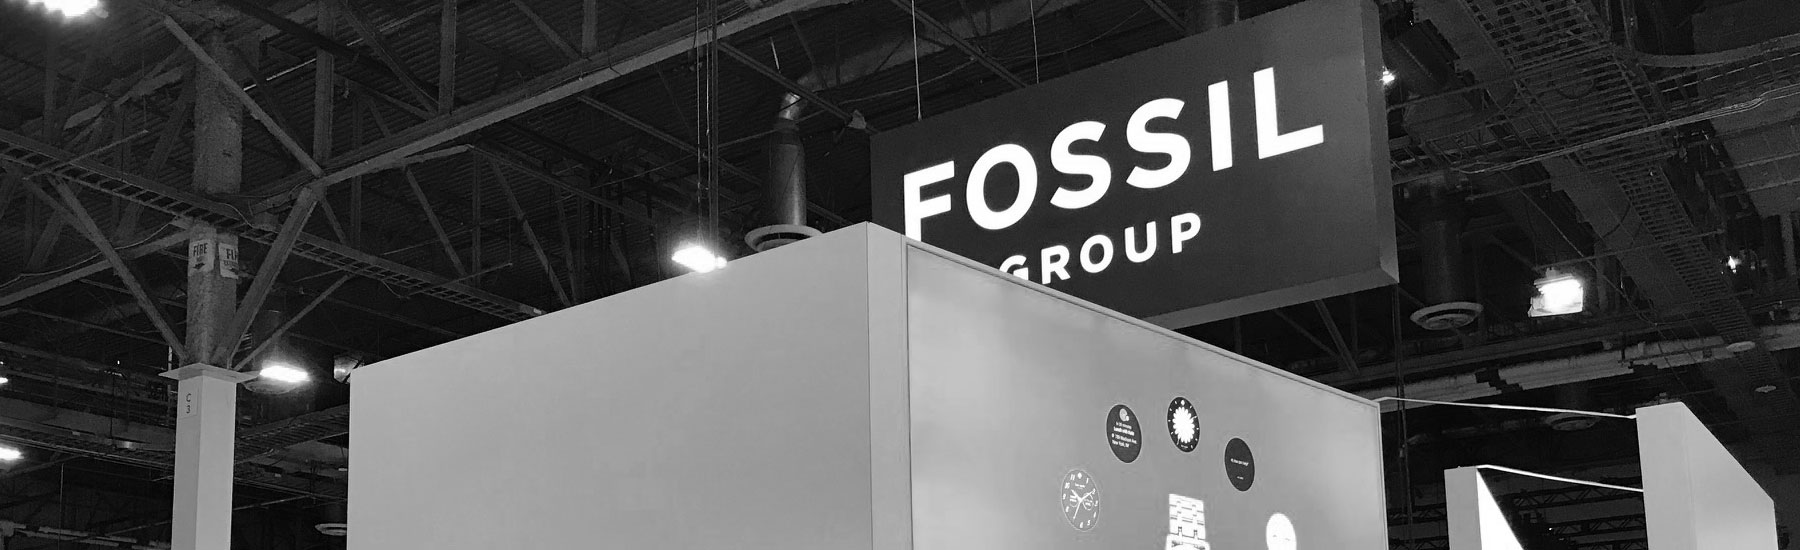 Fossil Group showcase in Health and Wellness wing at CES 2018